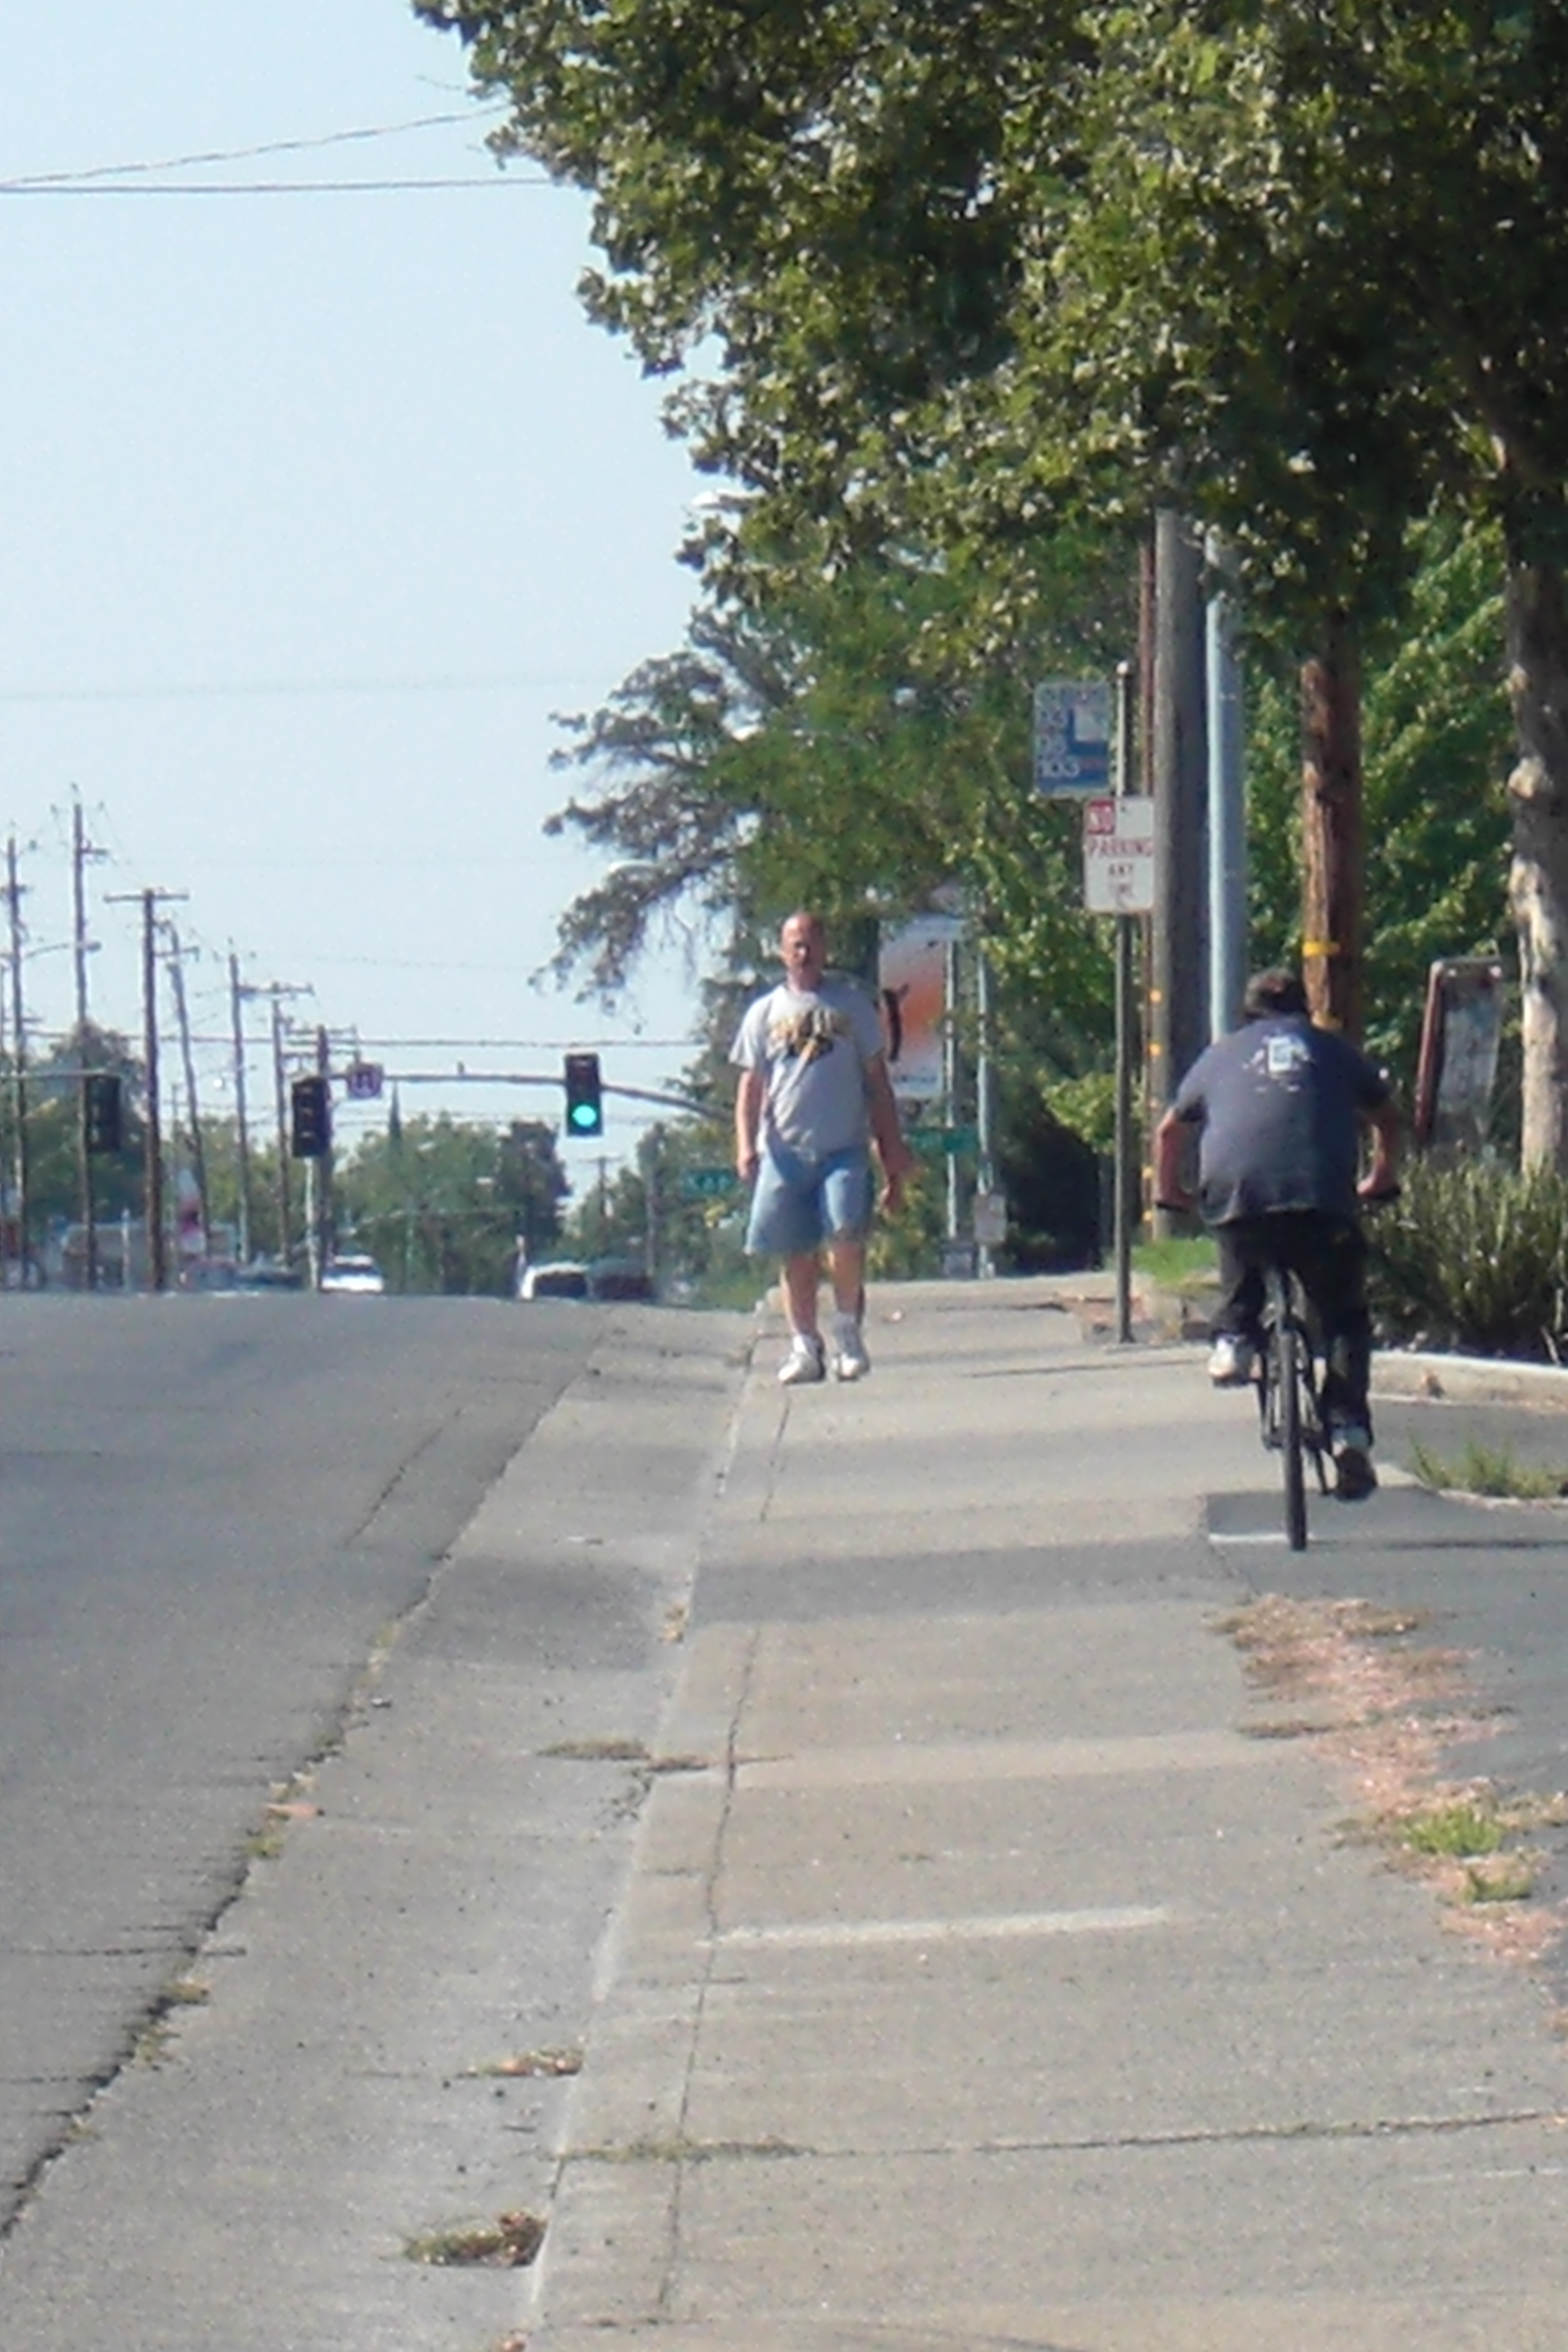 Pedestrian and Bike Conflict